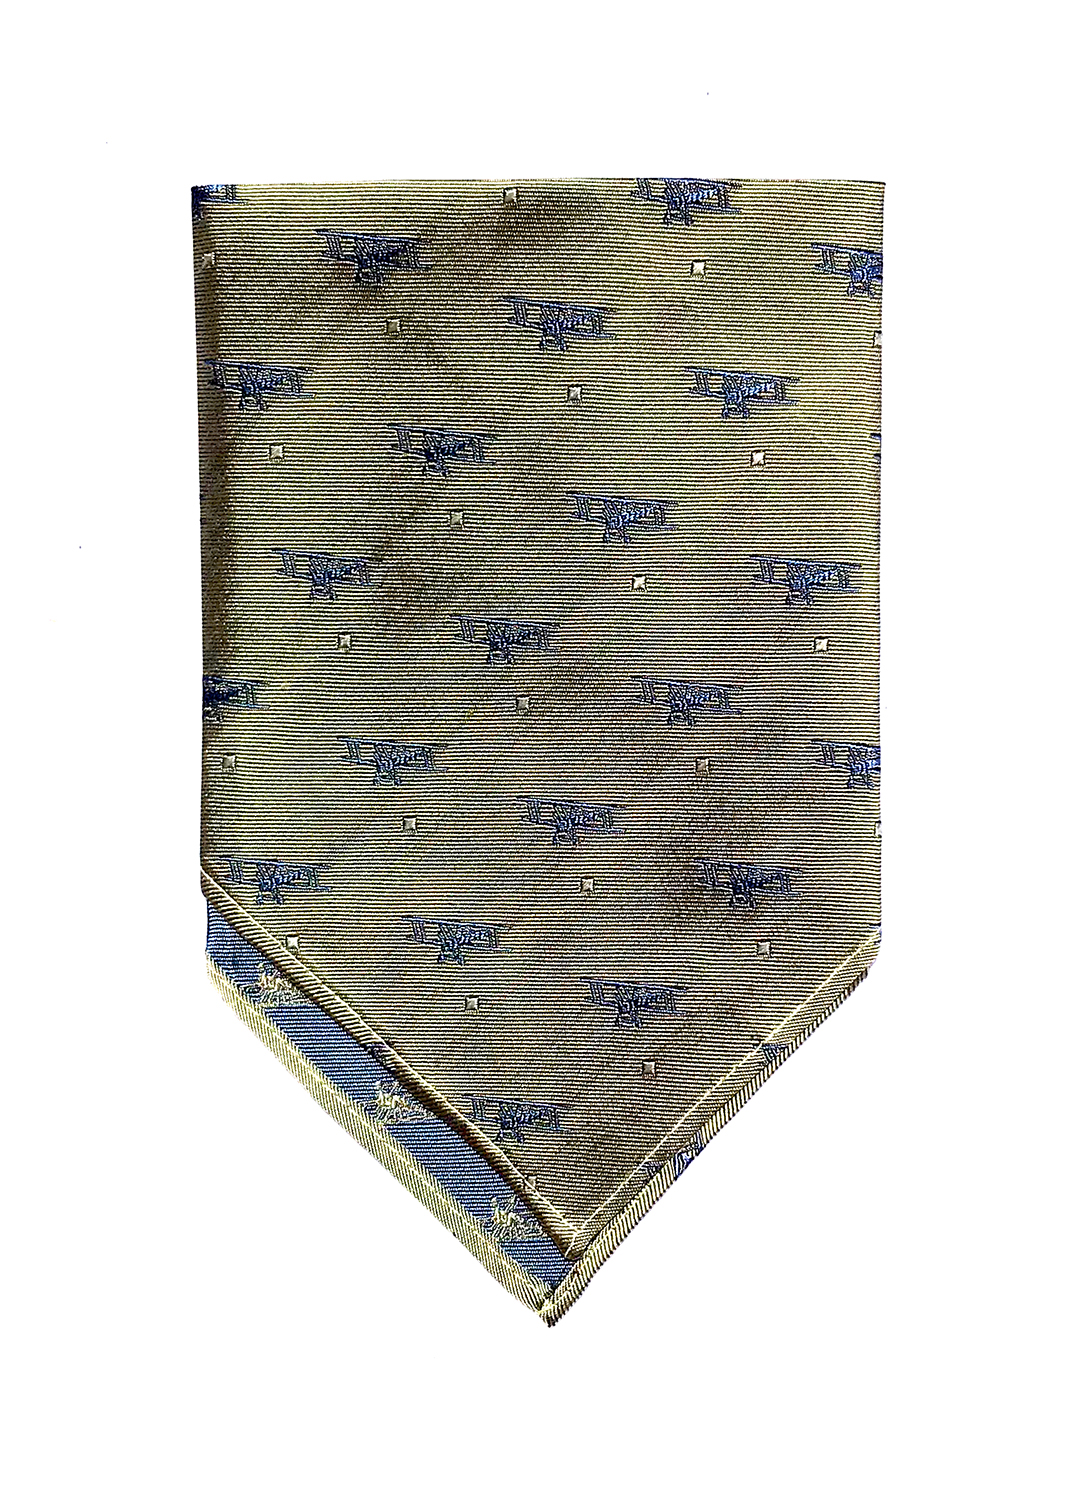 doppeldecker design aviation aircraft airplane pocket square biplane gold